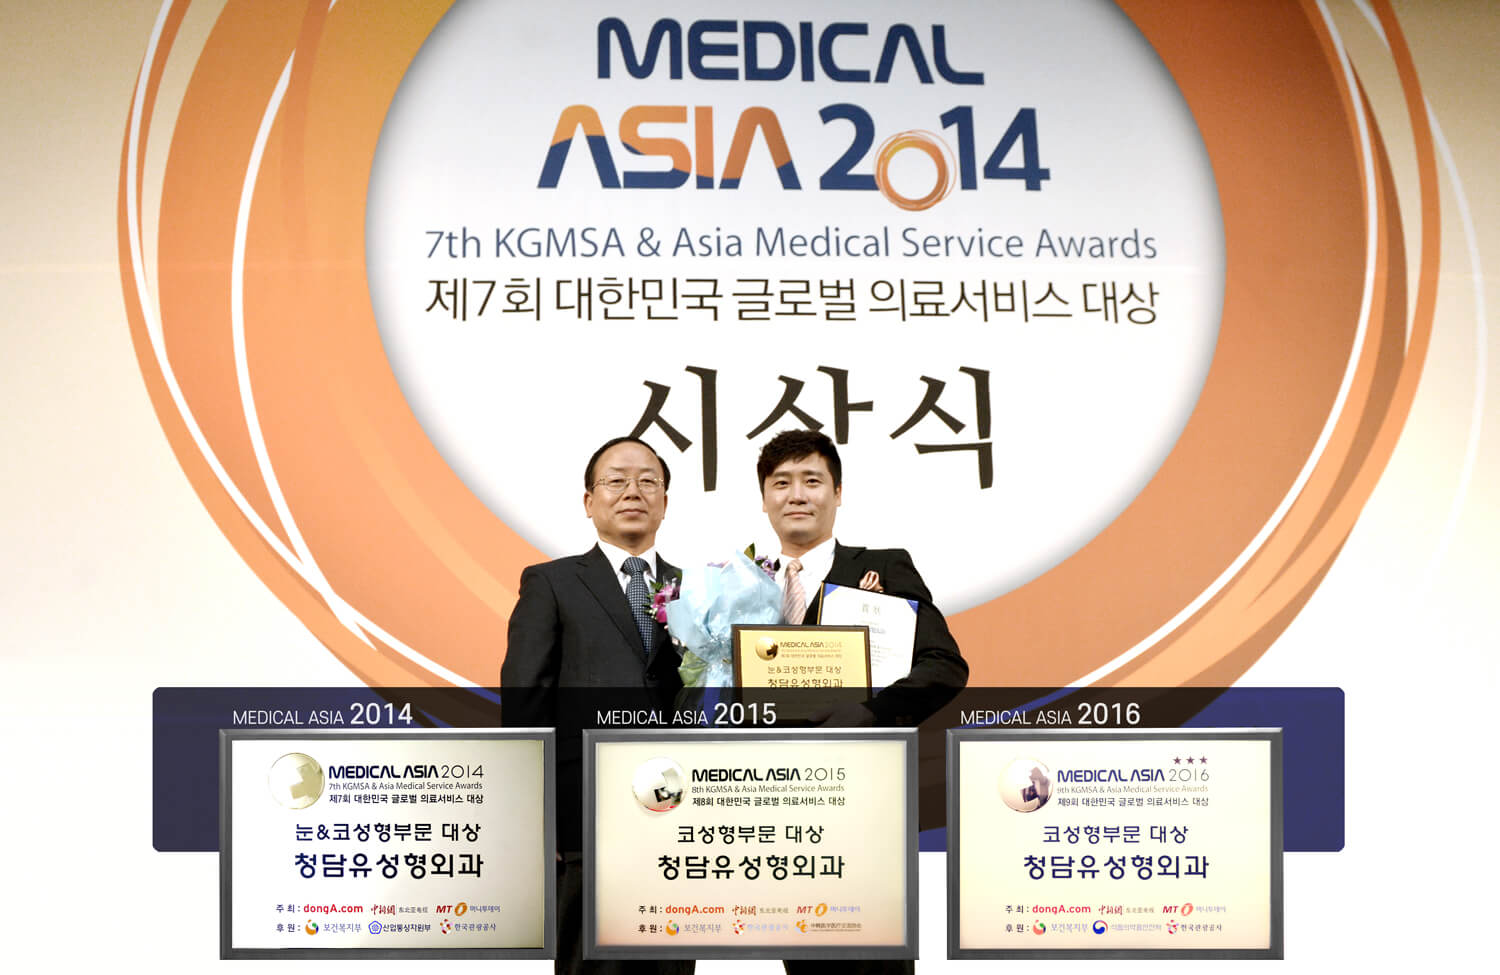 Grand Prize 2016 Medical Asia - 3rd Consecutive Year in Rhinoplasty Sector